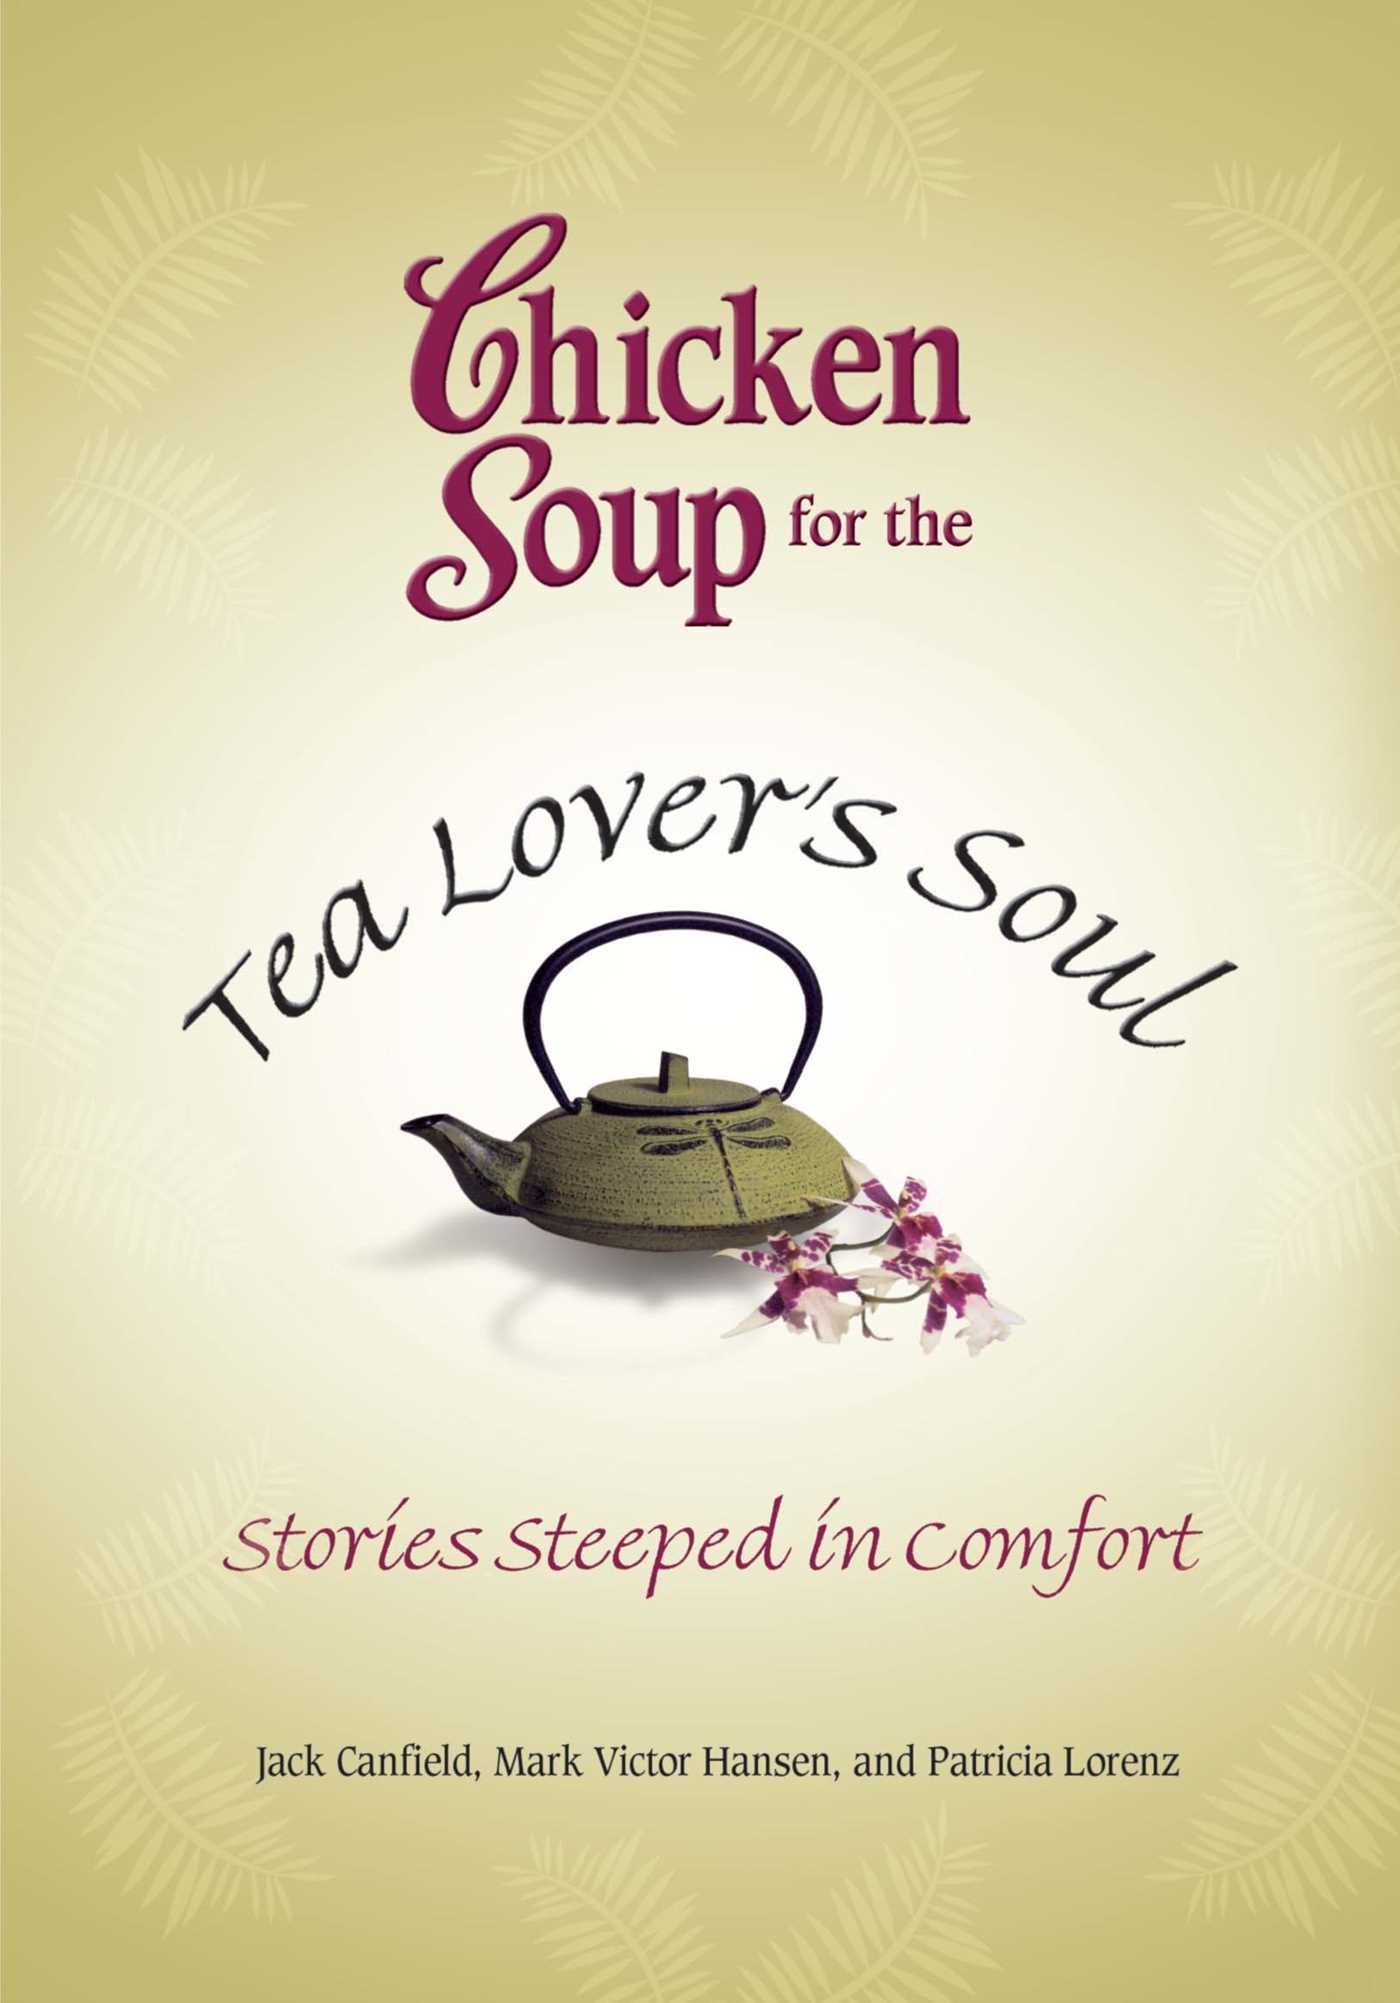 Chicken soup for the tea lovers soul 9781623610647 hr